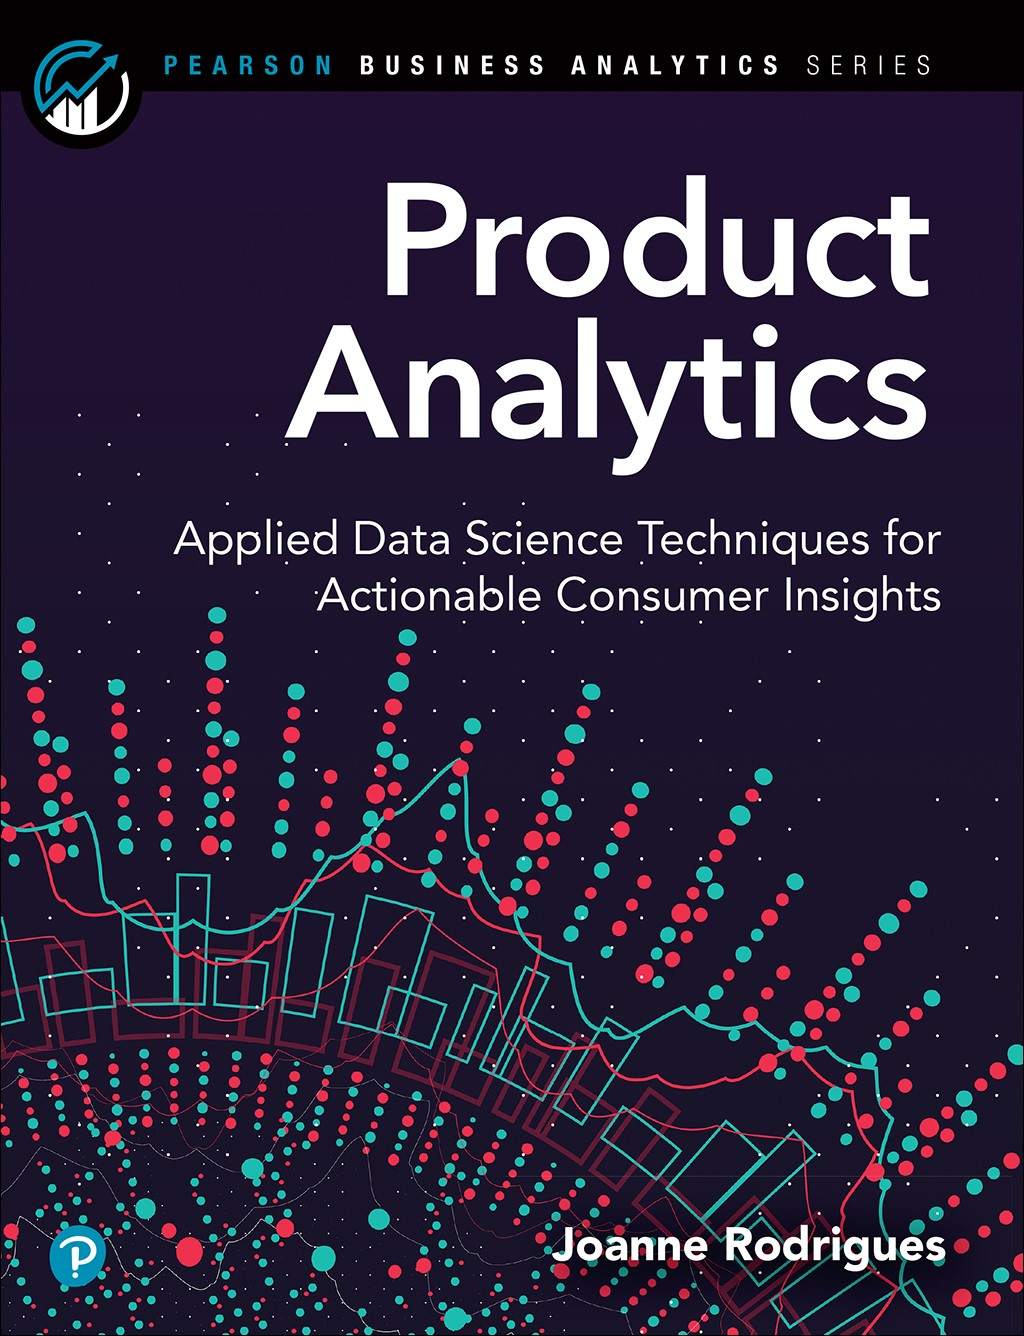 Product Analytics: Applied Data Science Techniques for Actionable Consumer Insights